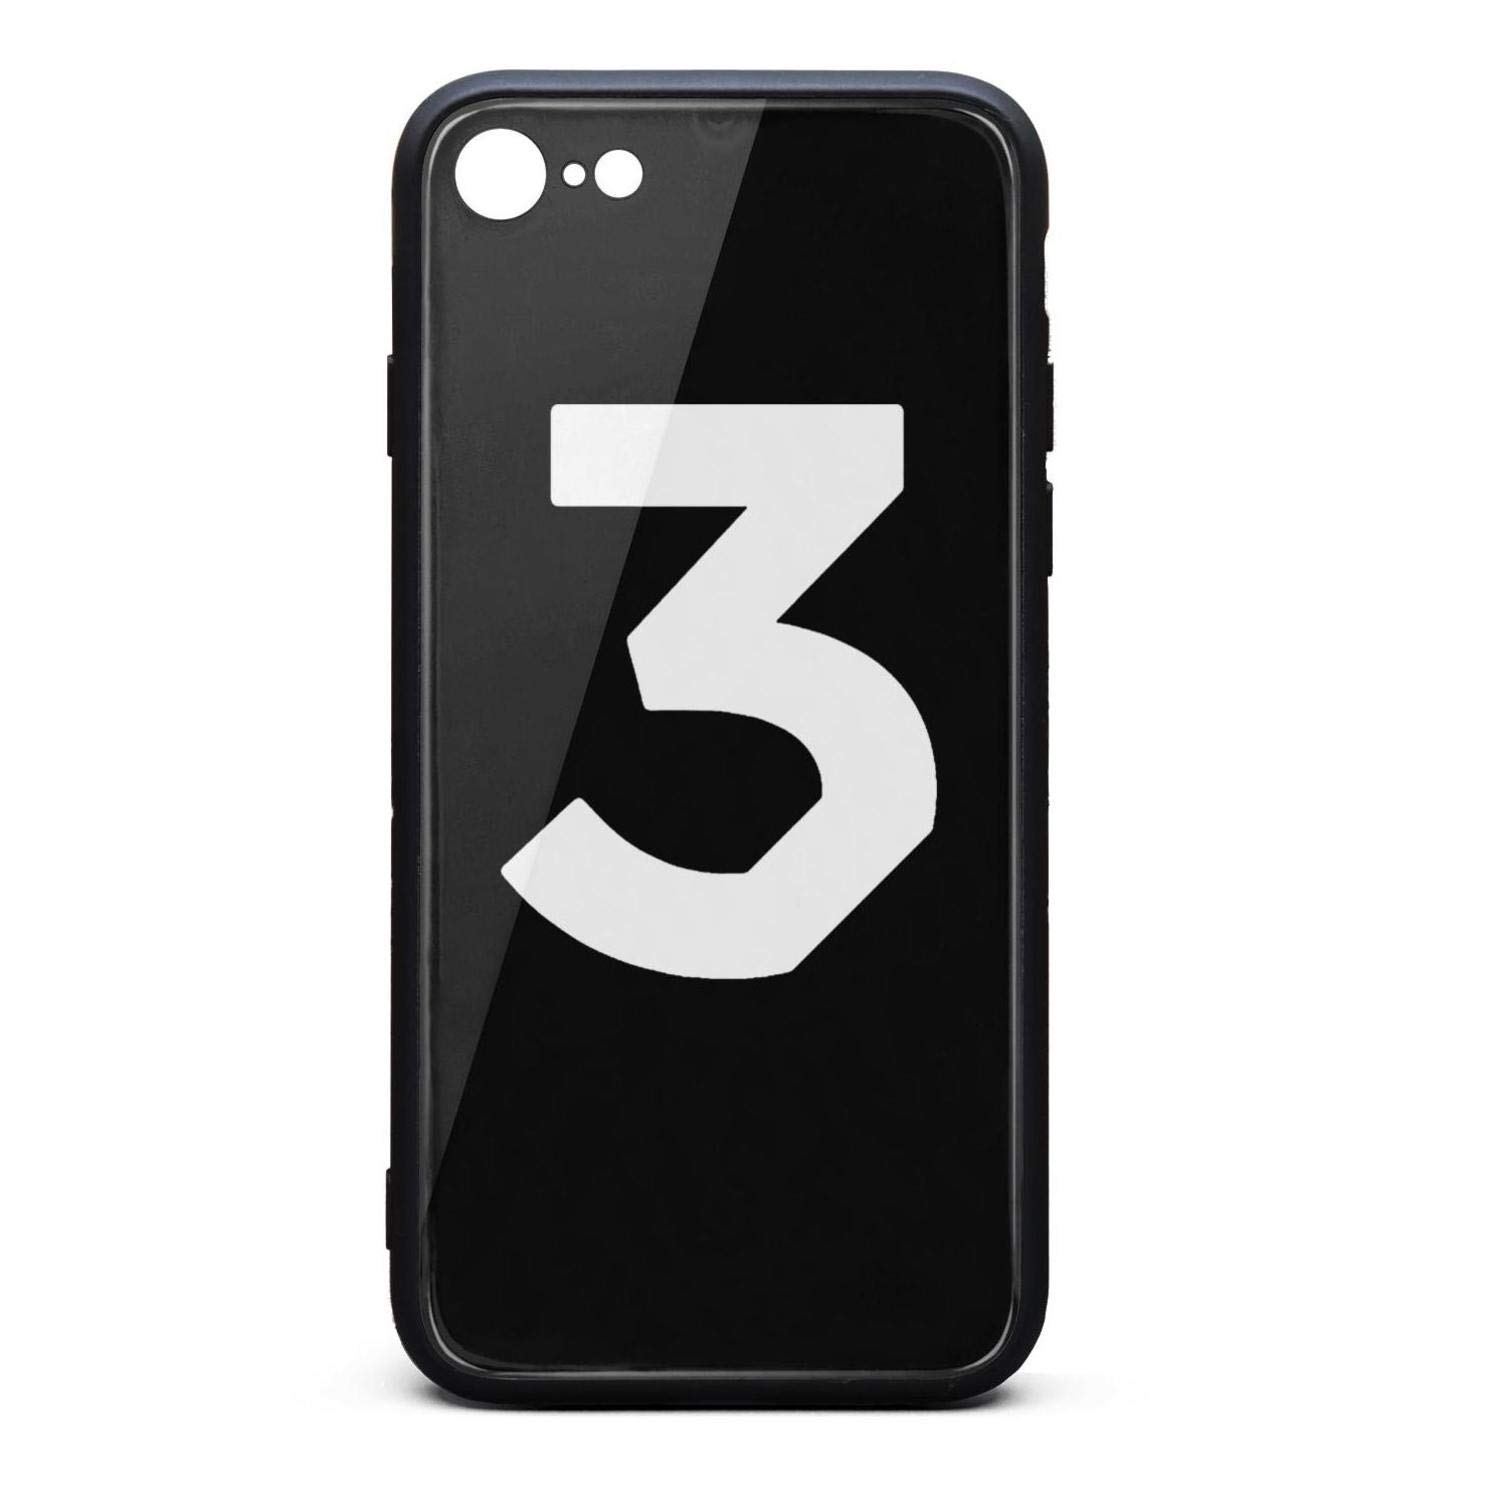 Amazon com: iPhone 6/iPhone 6s Case Chance-The-Rapper-3